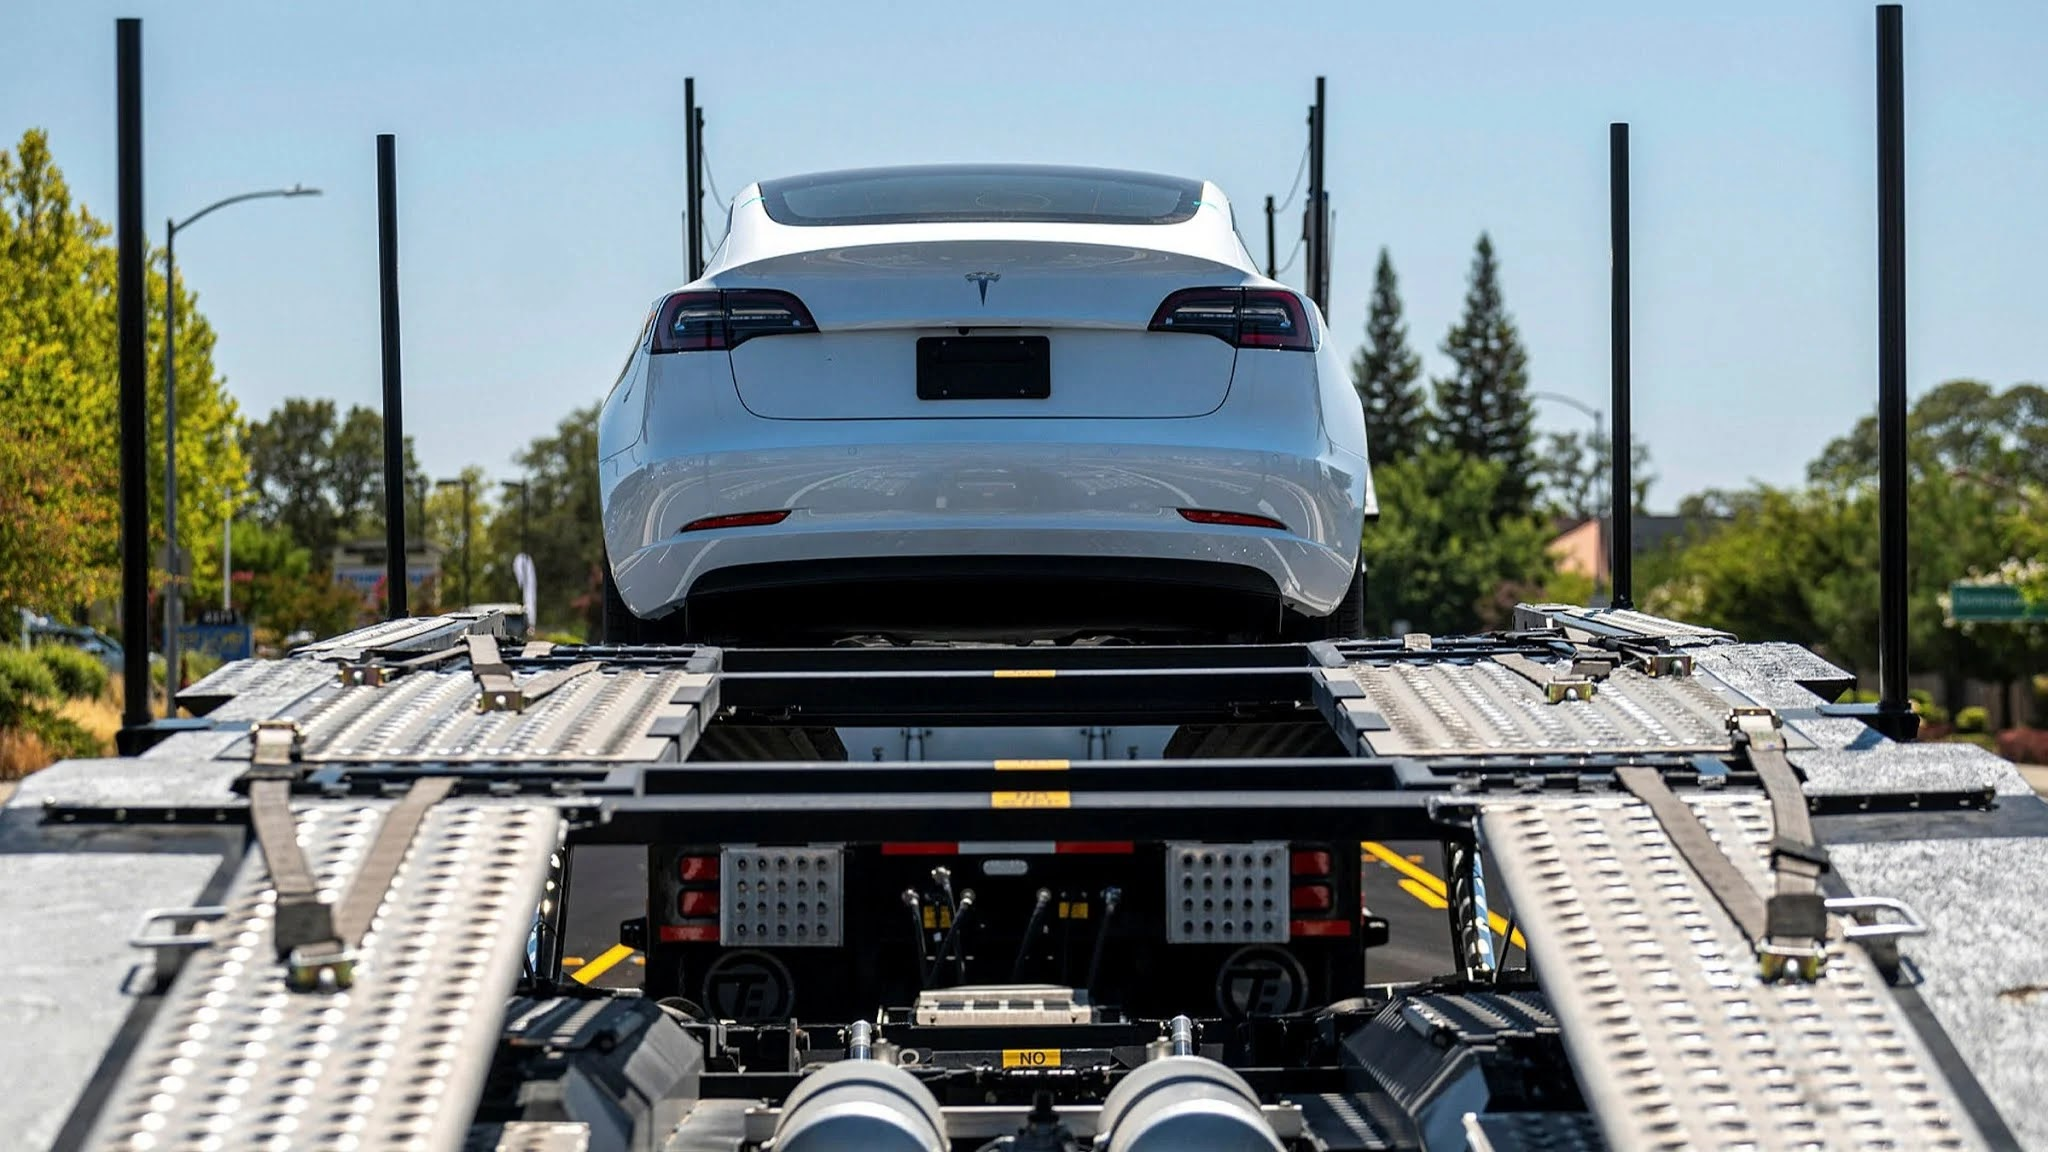 2030 usa electric cars,us electric cars by 2030,how many electric cars will there be in 2030,how many electric cars by 2030,will all cars be electric by 2030,what percentage of cars will be electric by 2030,how much will electric cars cost in 2025